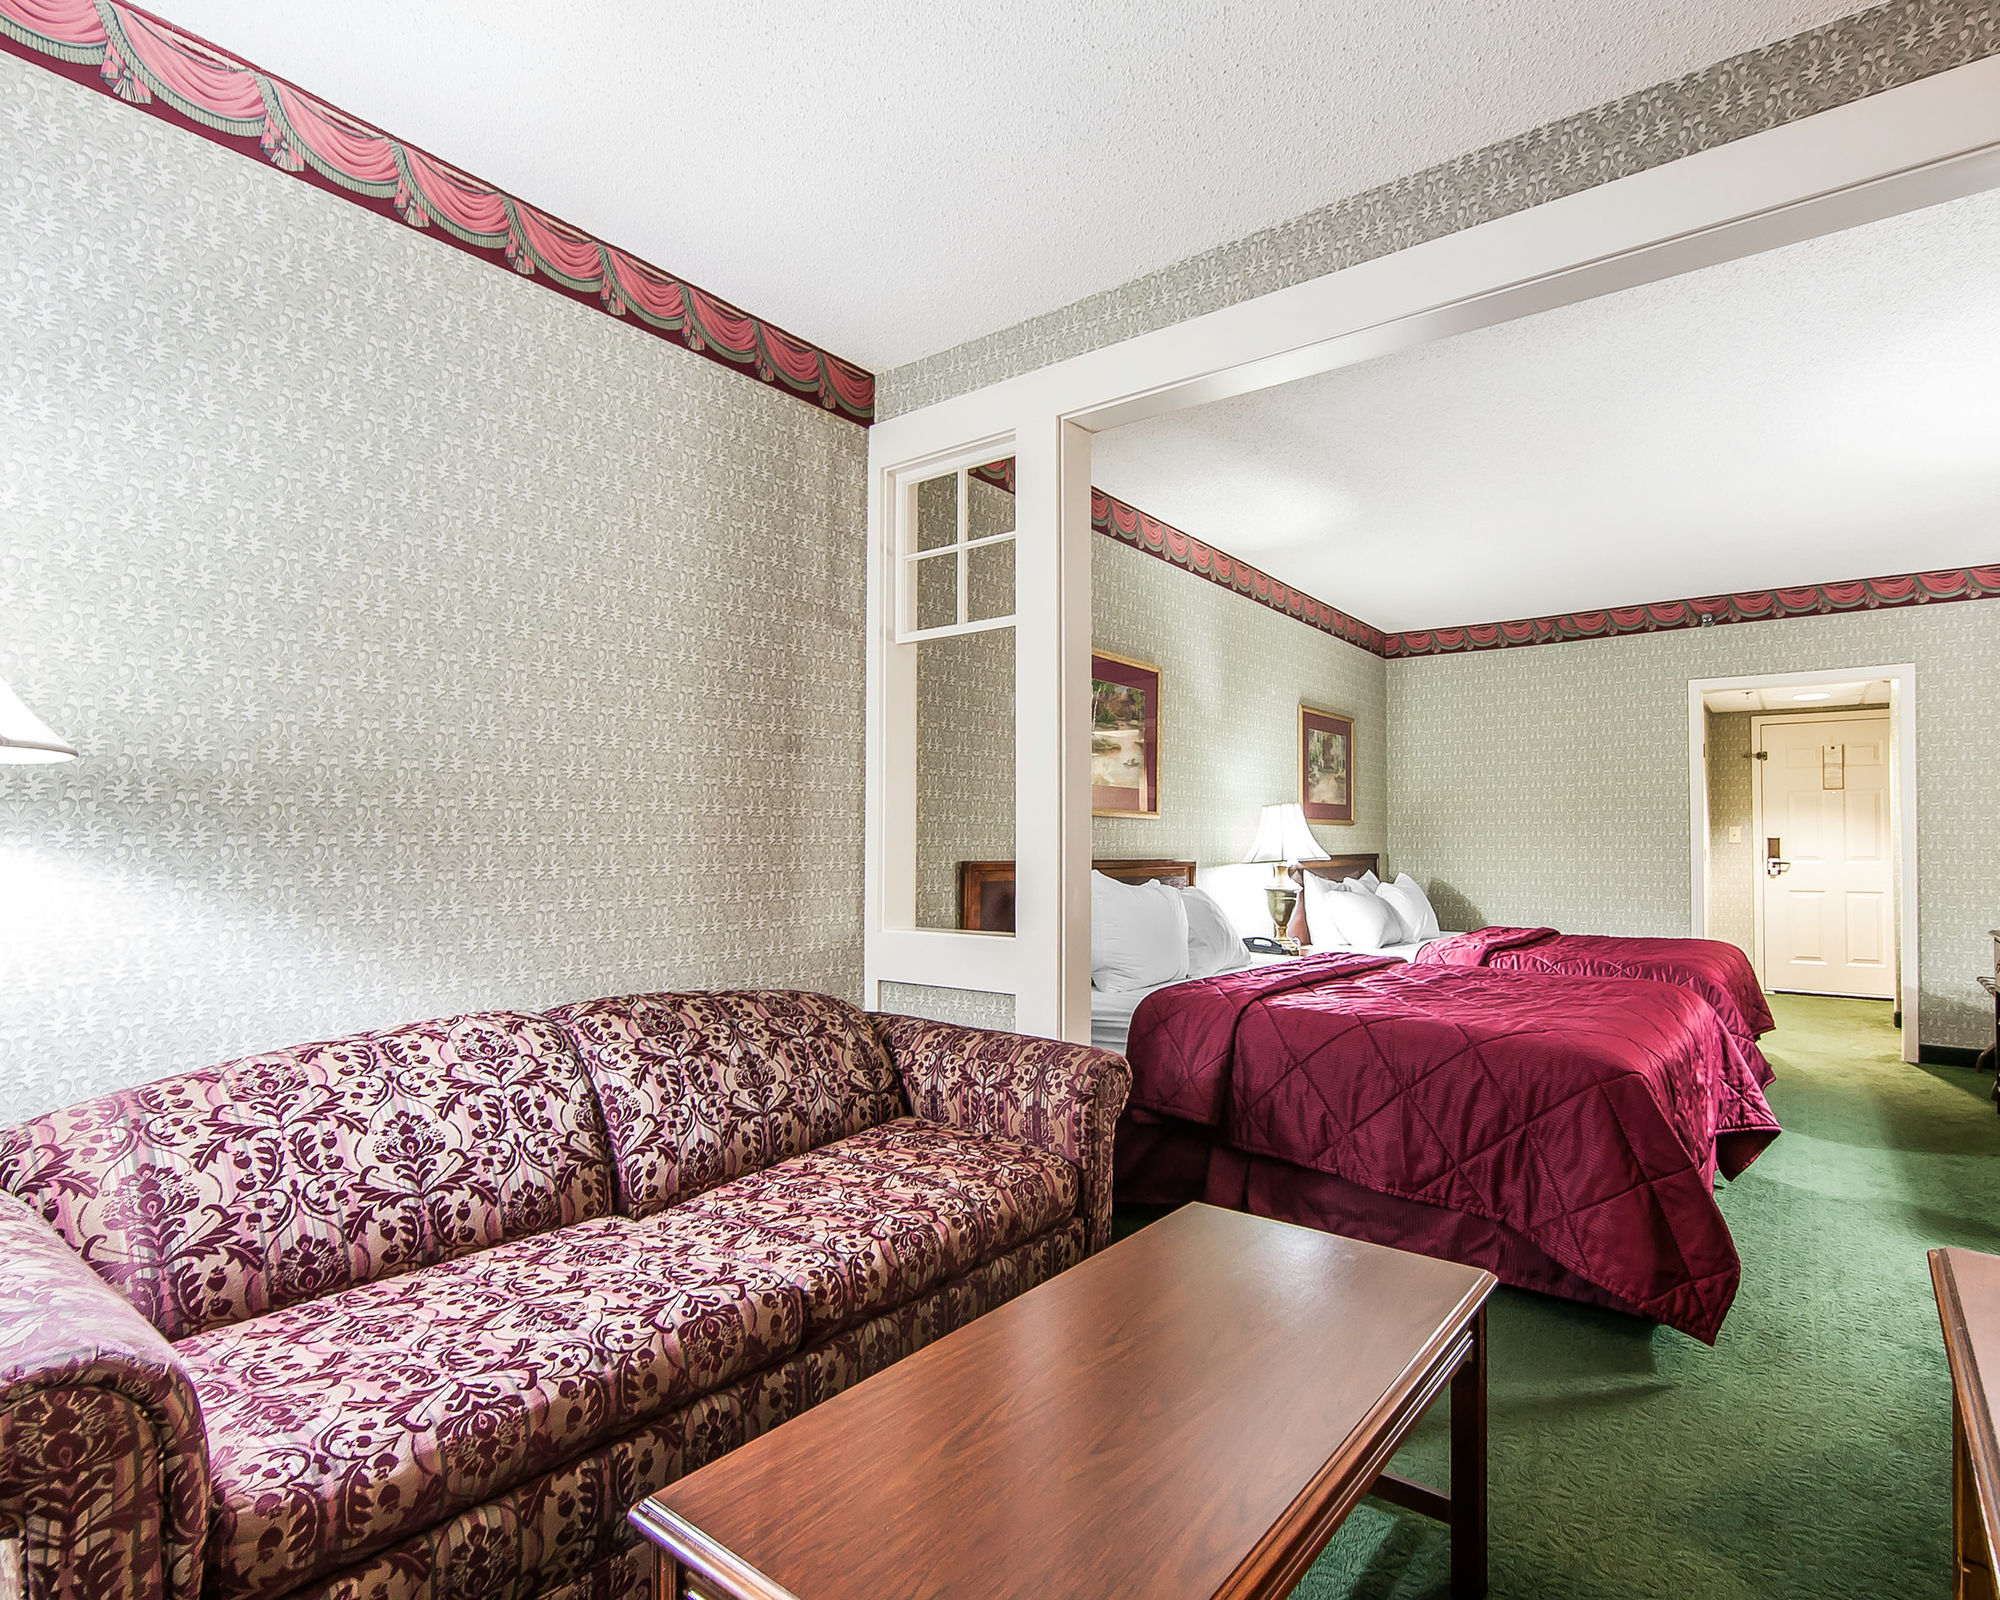 Clarion Inn Willow River in Sevierville, TN